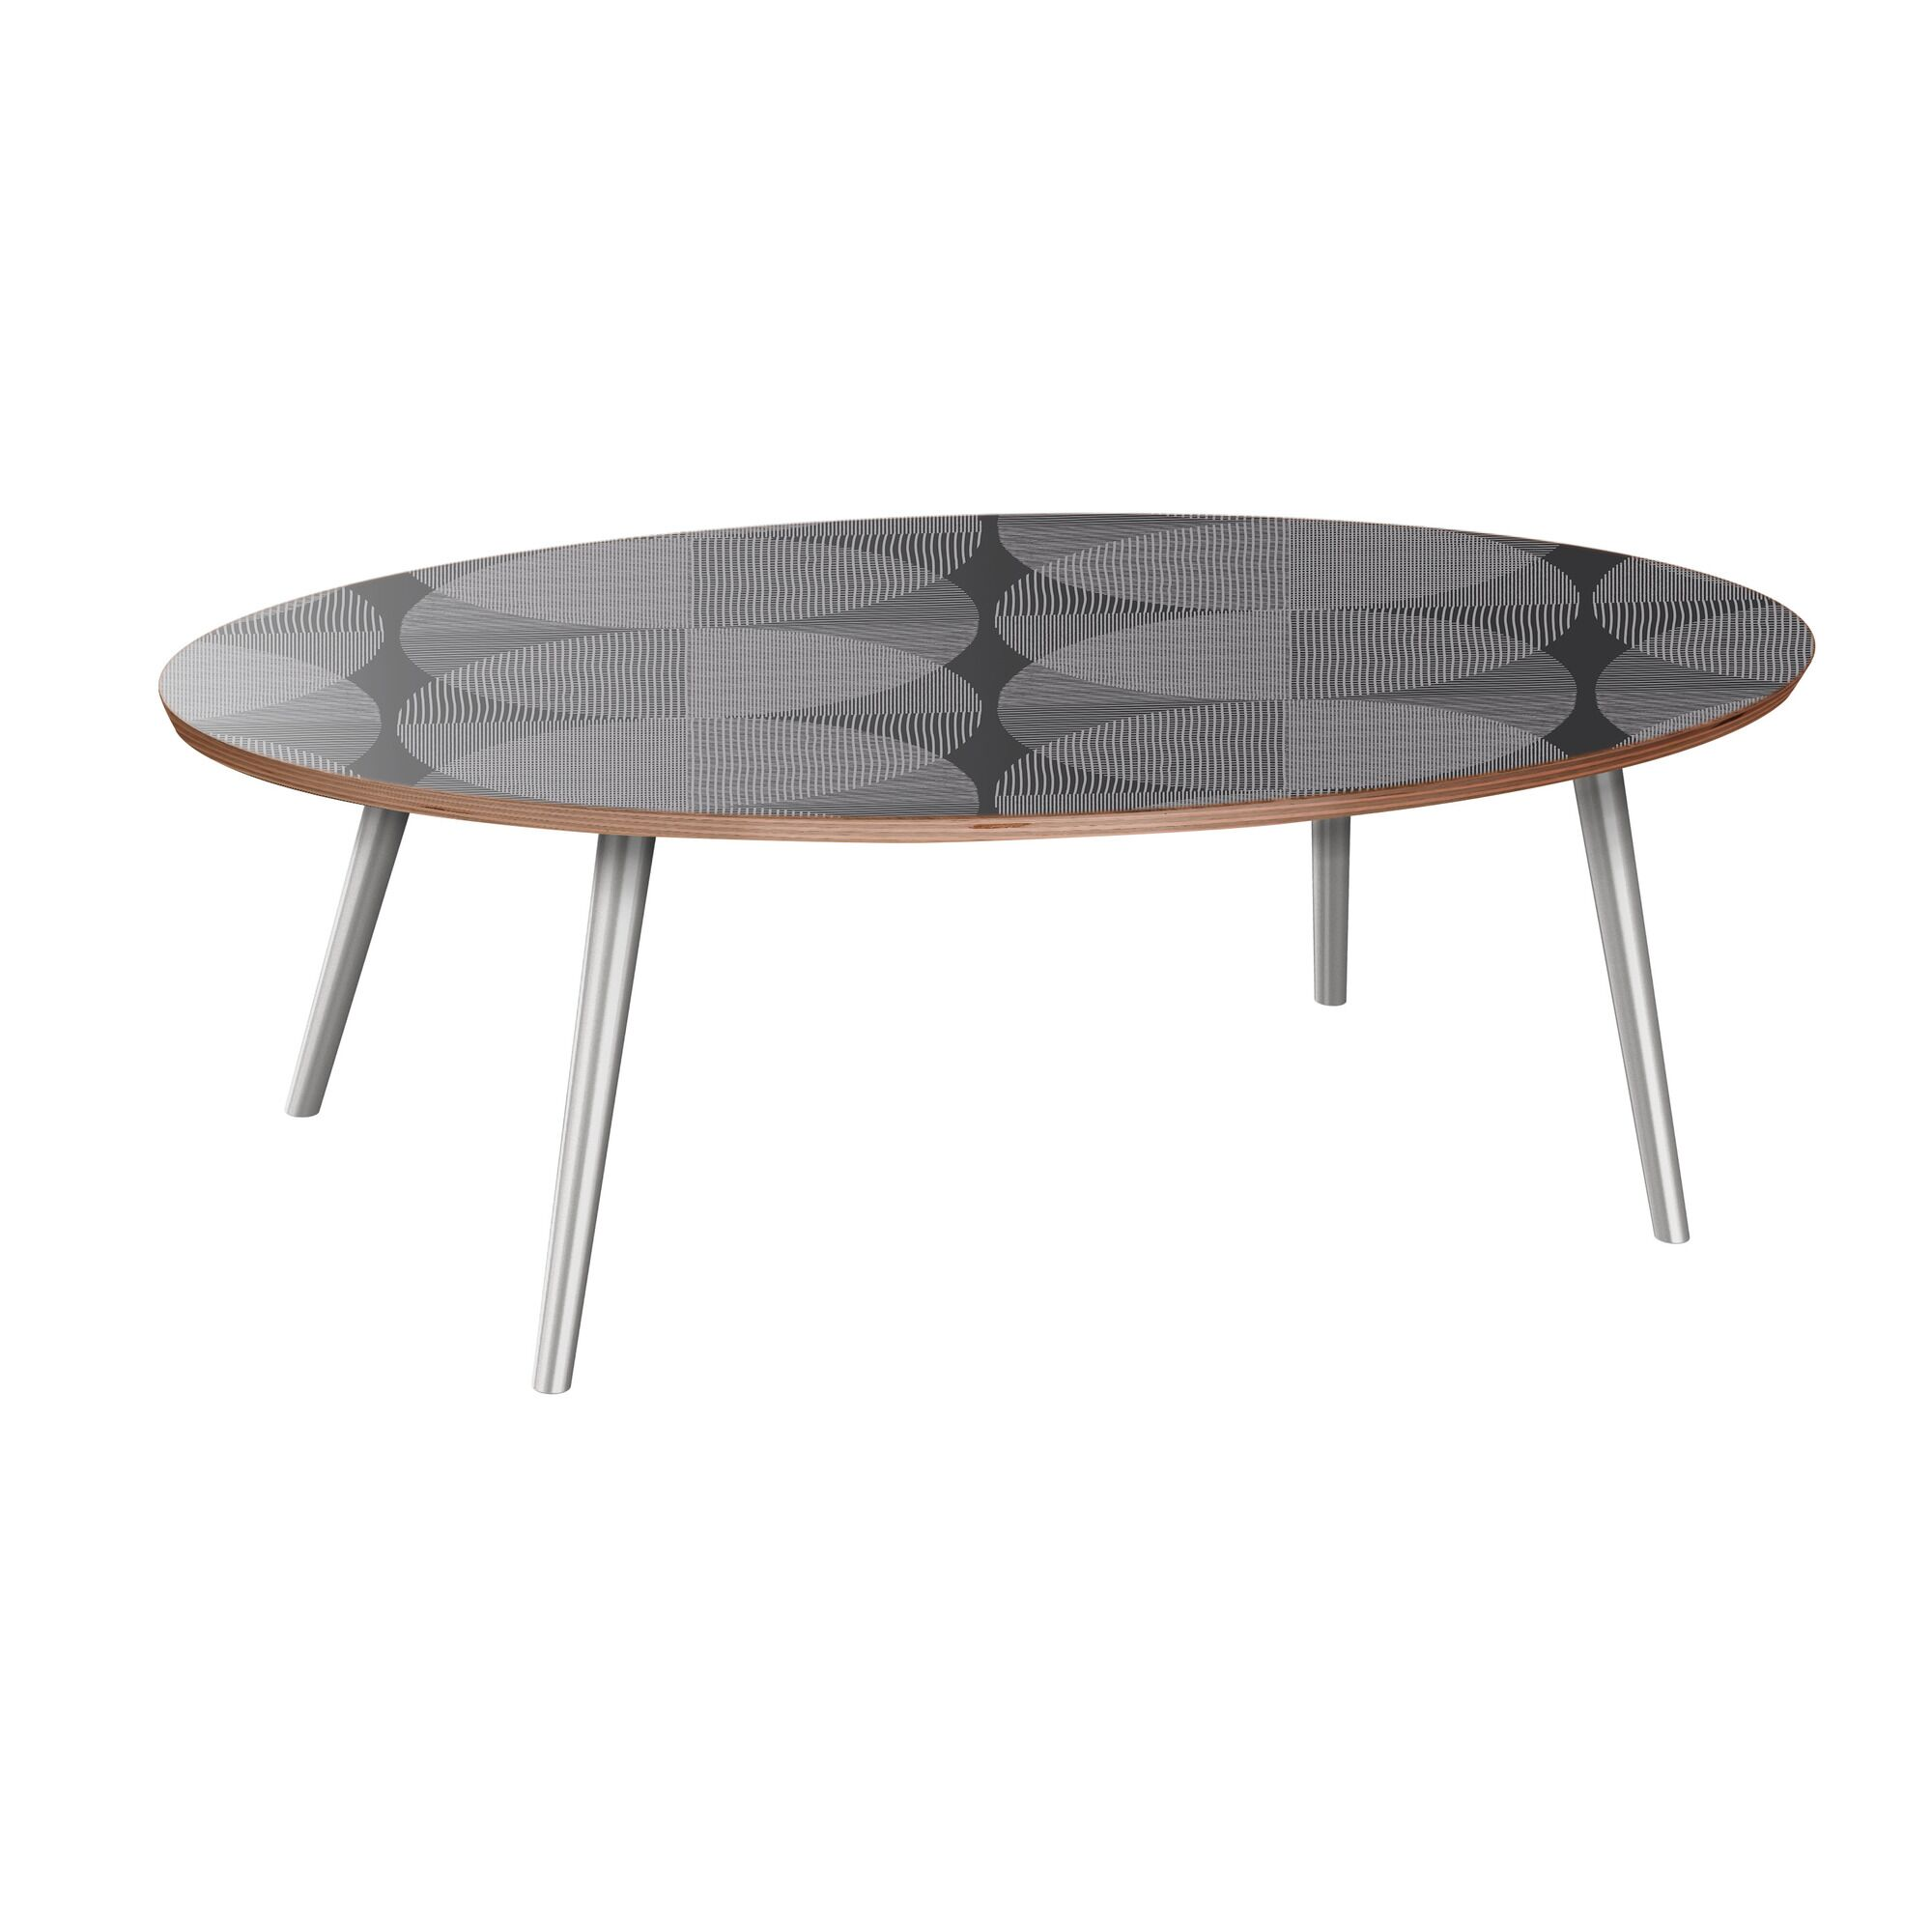 Kittredge Coffee Table Table Base Color: Chrome, Table Top Color: Walnut